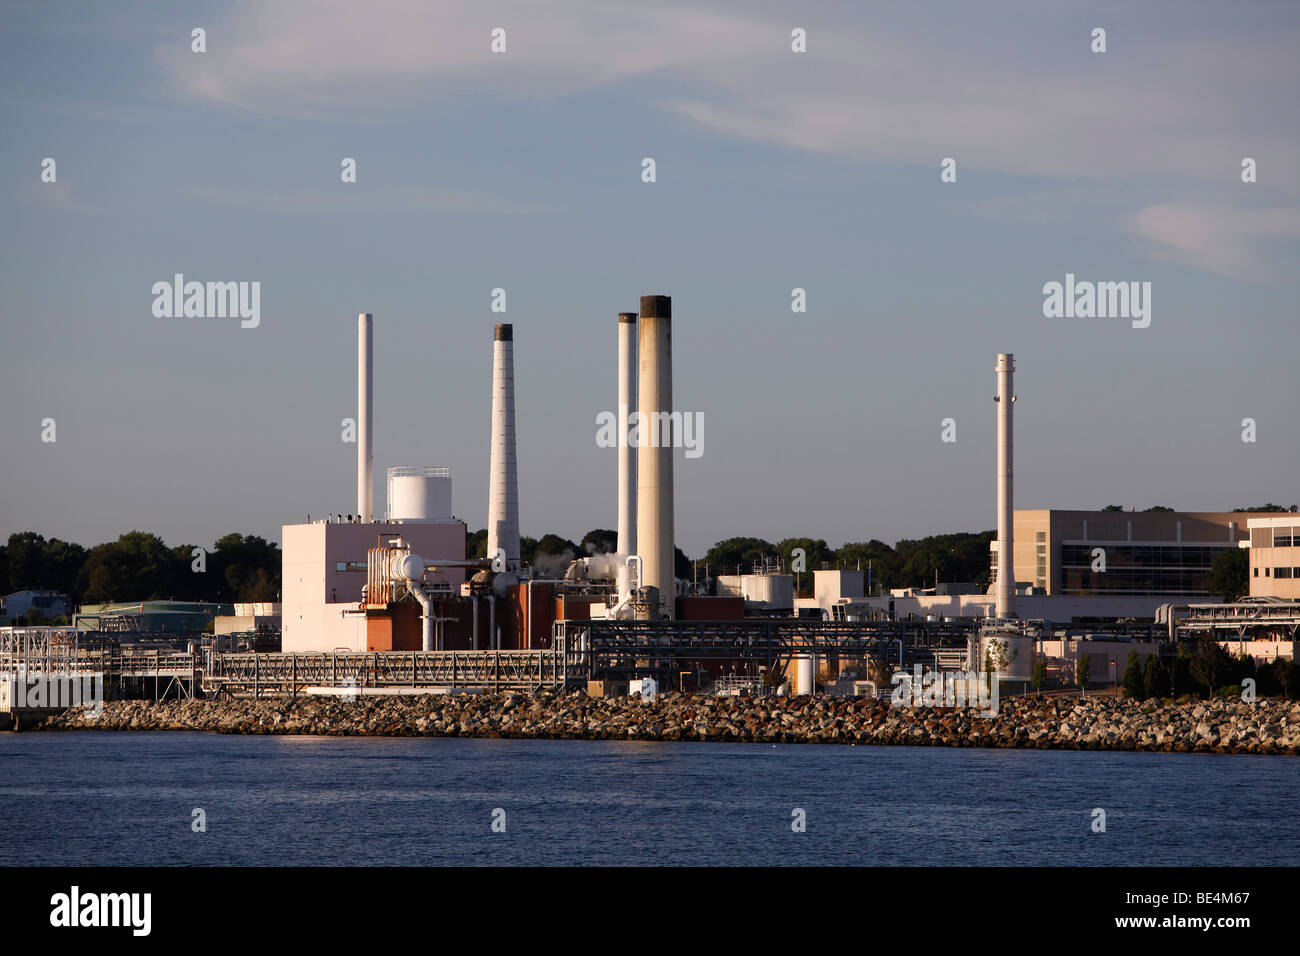 industrial power plant, New London, Connecticut - Stock Image